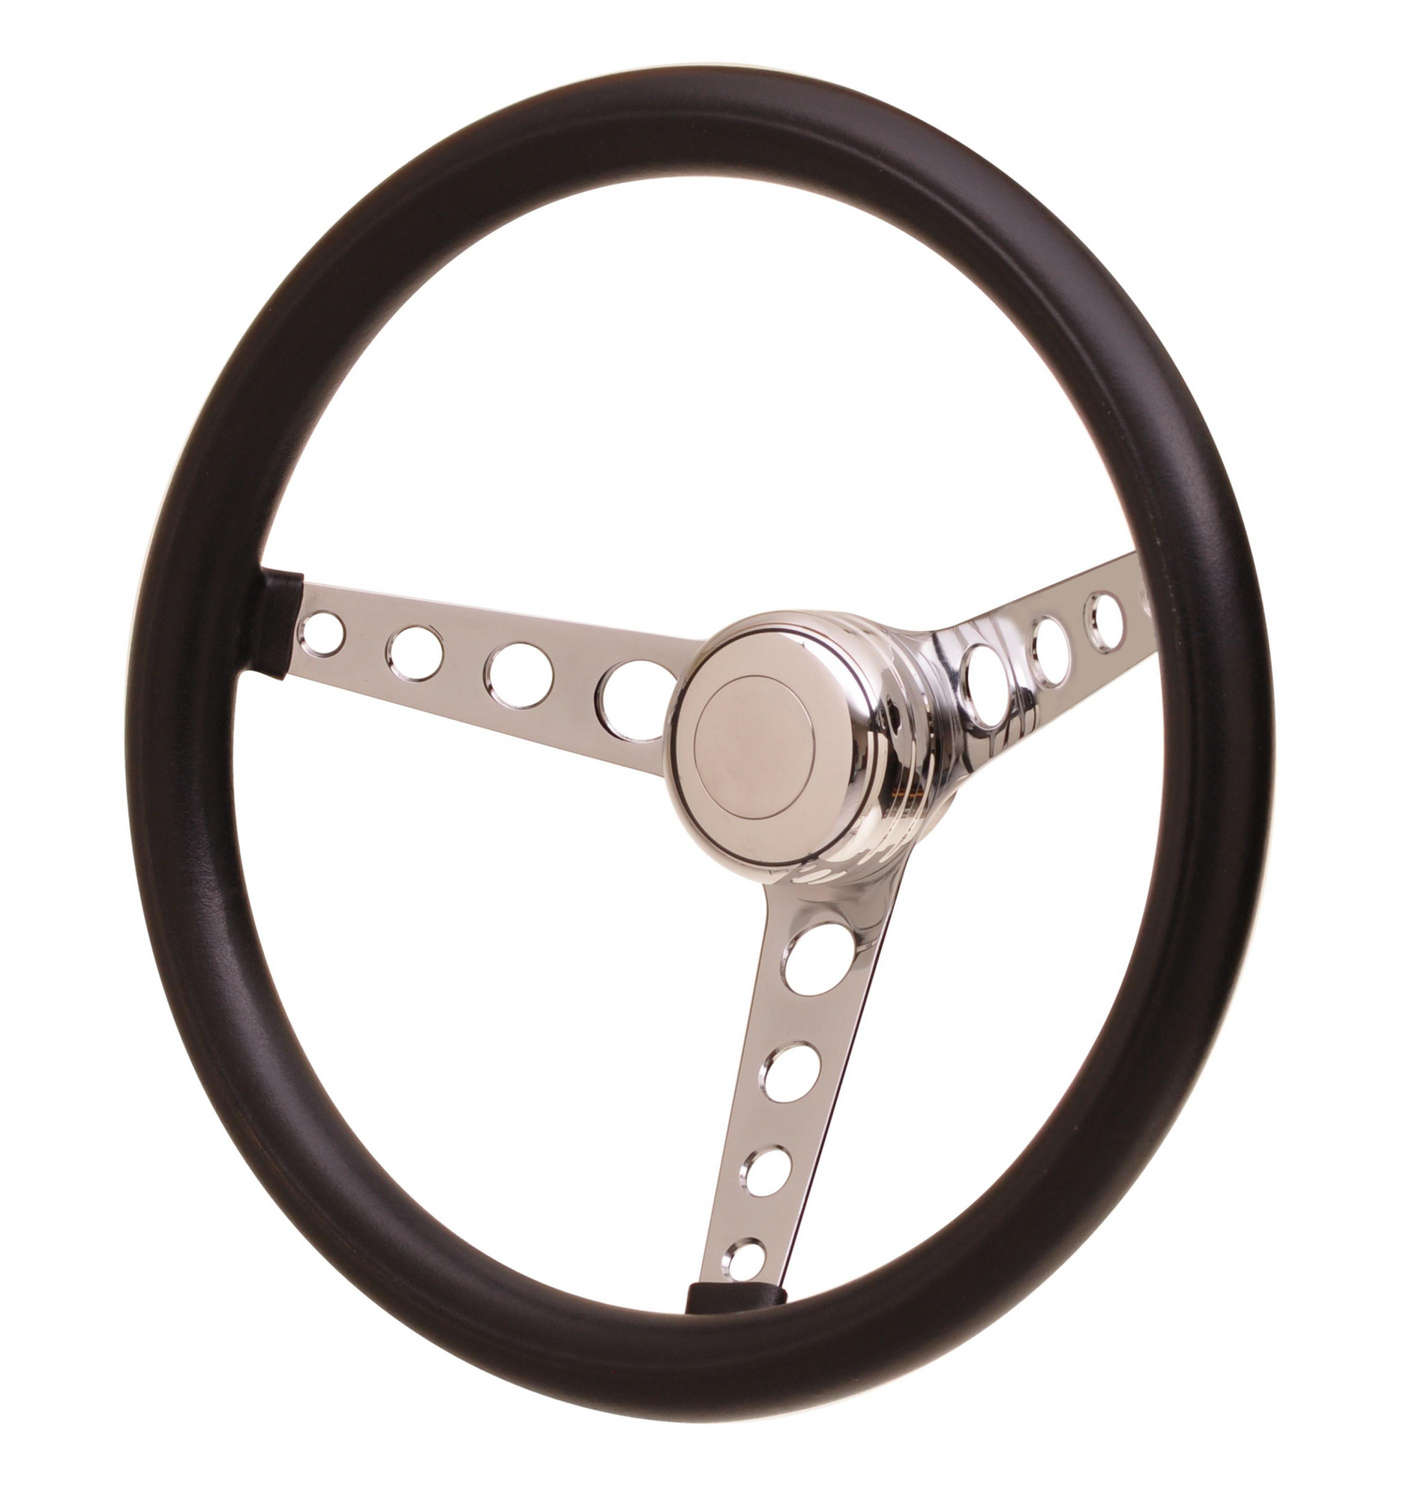 GT Performance GT Classic Foam Steering Wheel 14-1/2 in Diameter P/N 14-4331